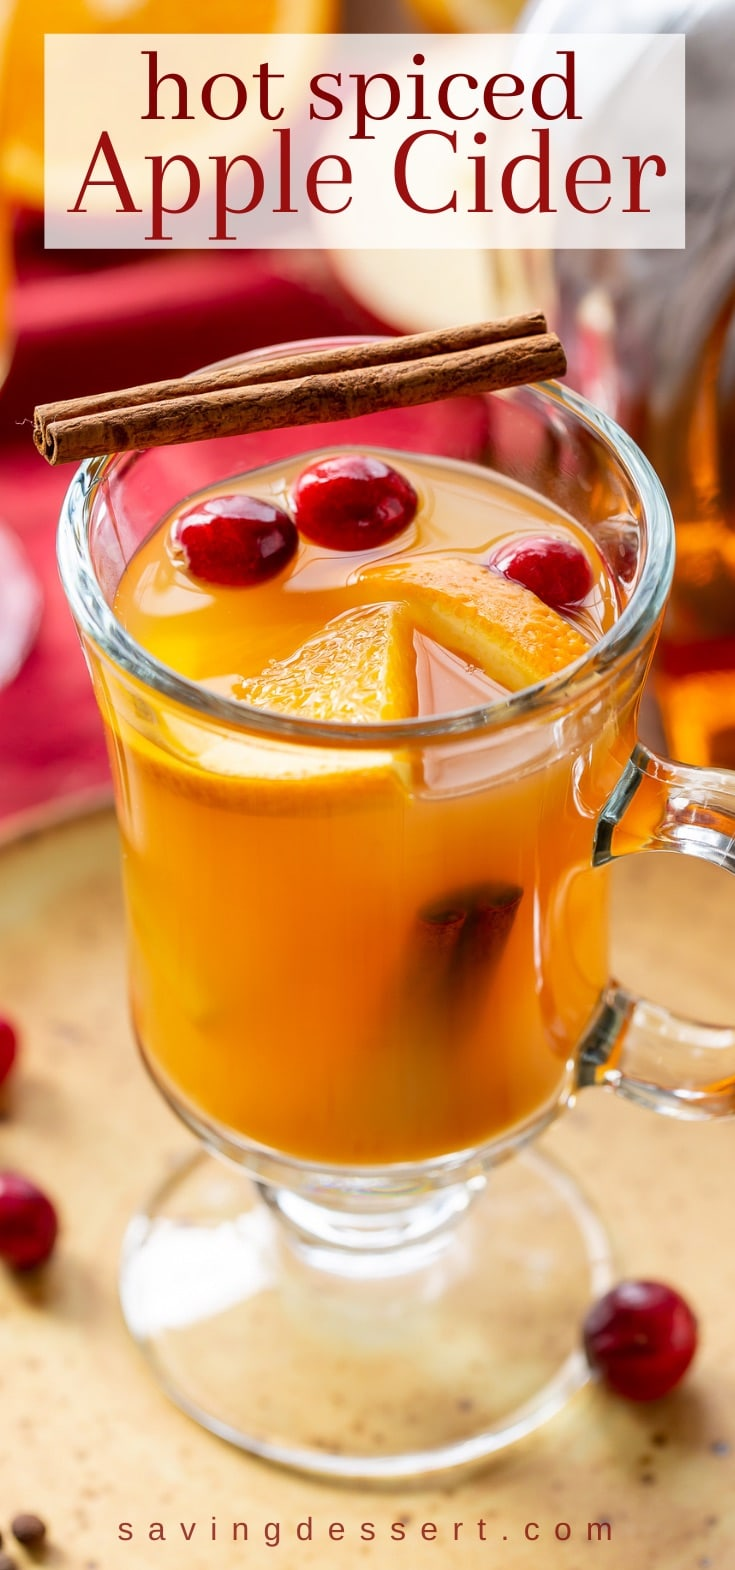 A mug of hot apple cider with cranberries and orange slices